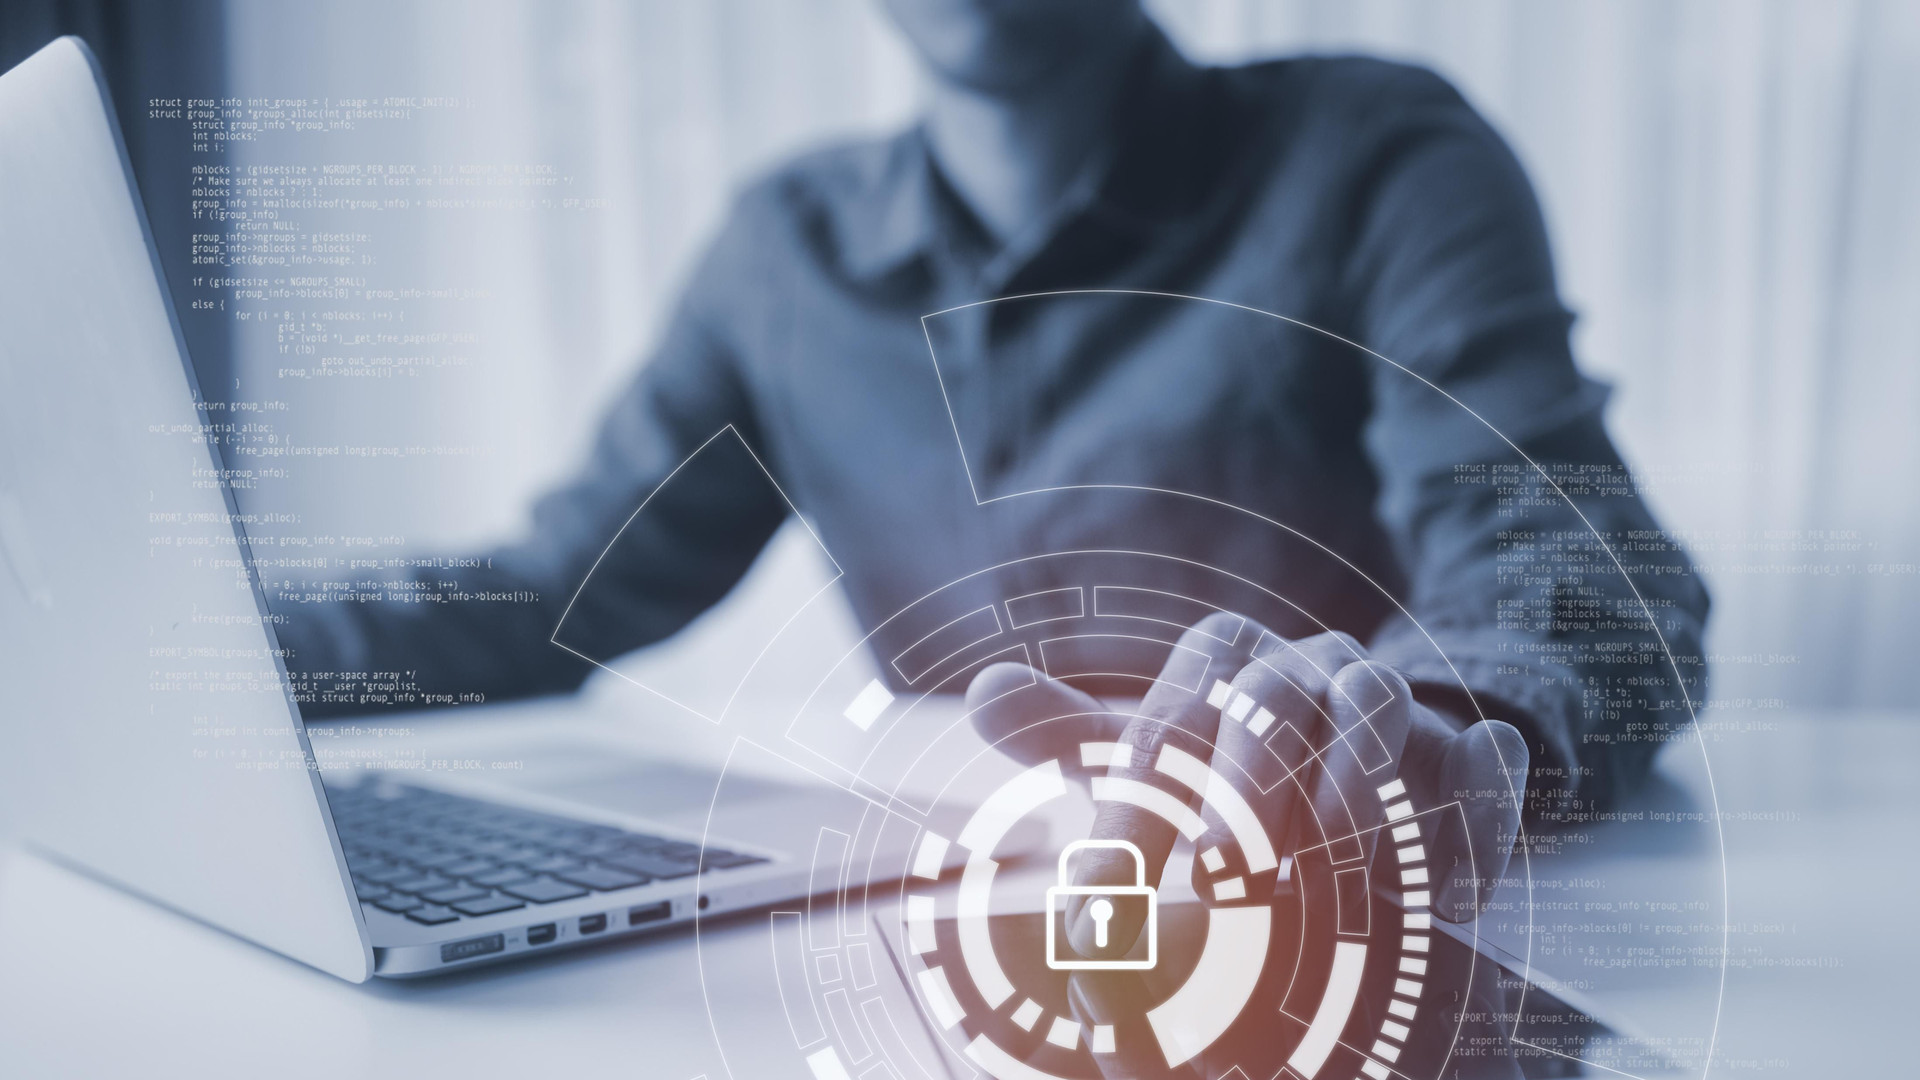 The 6 Things Small Businesses Need To Know About Security